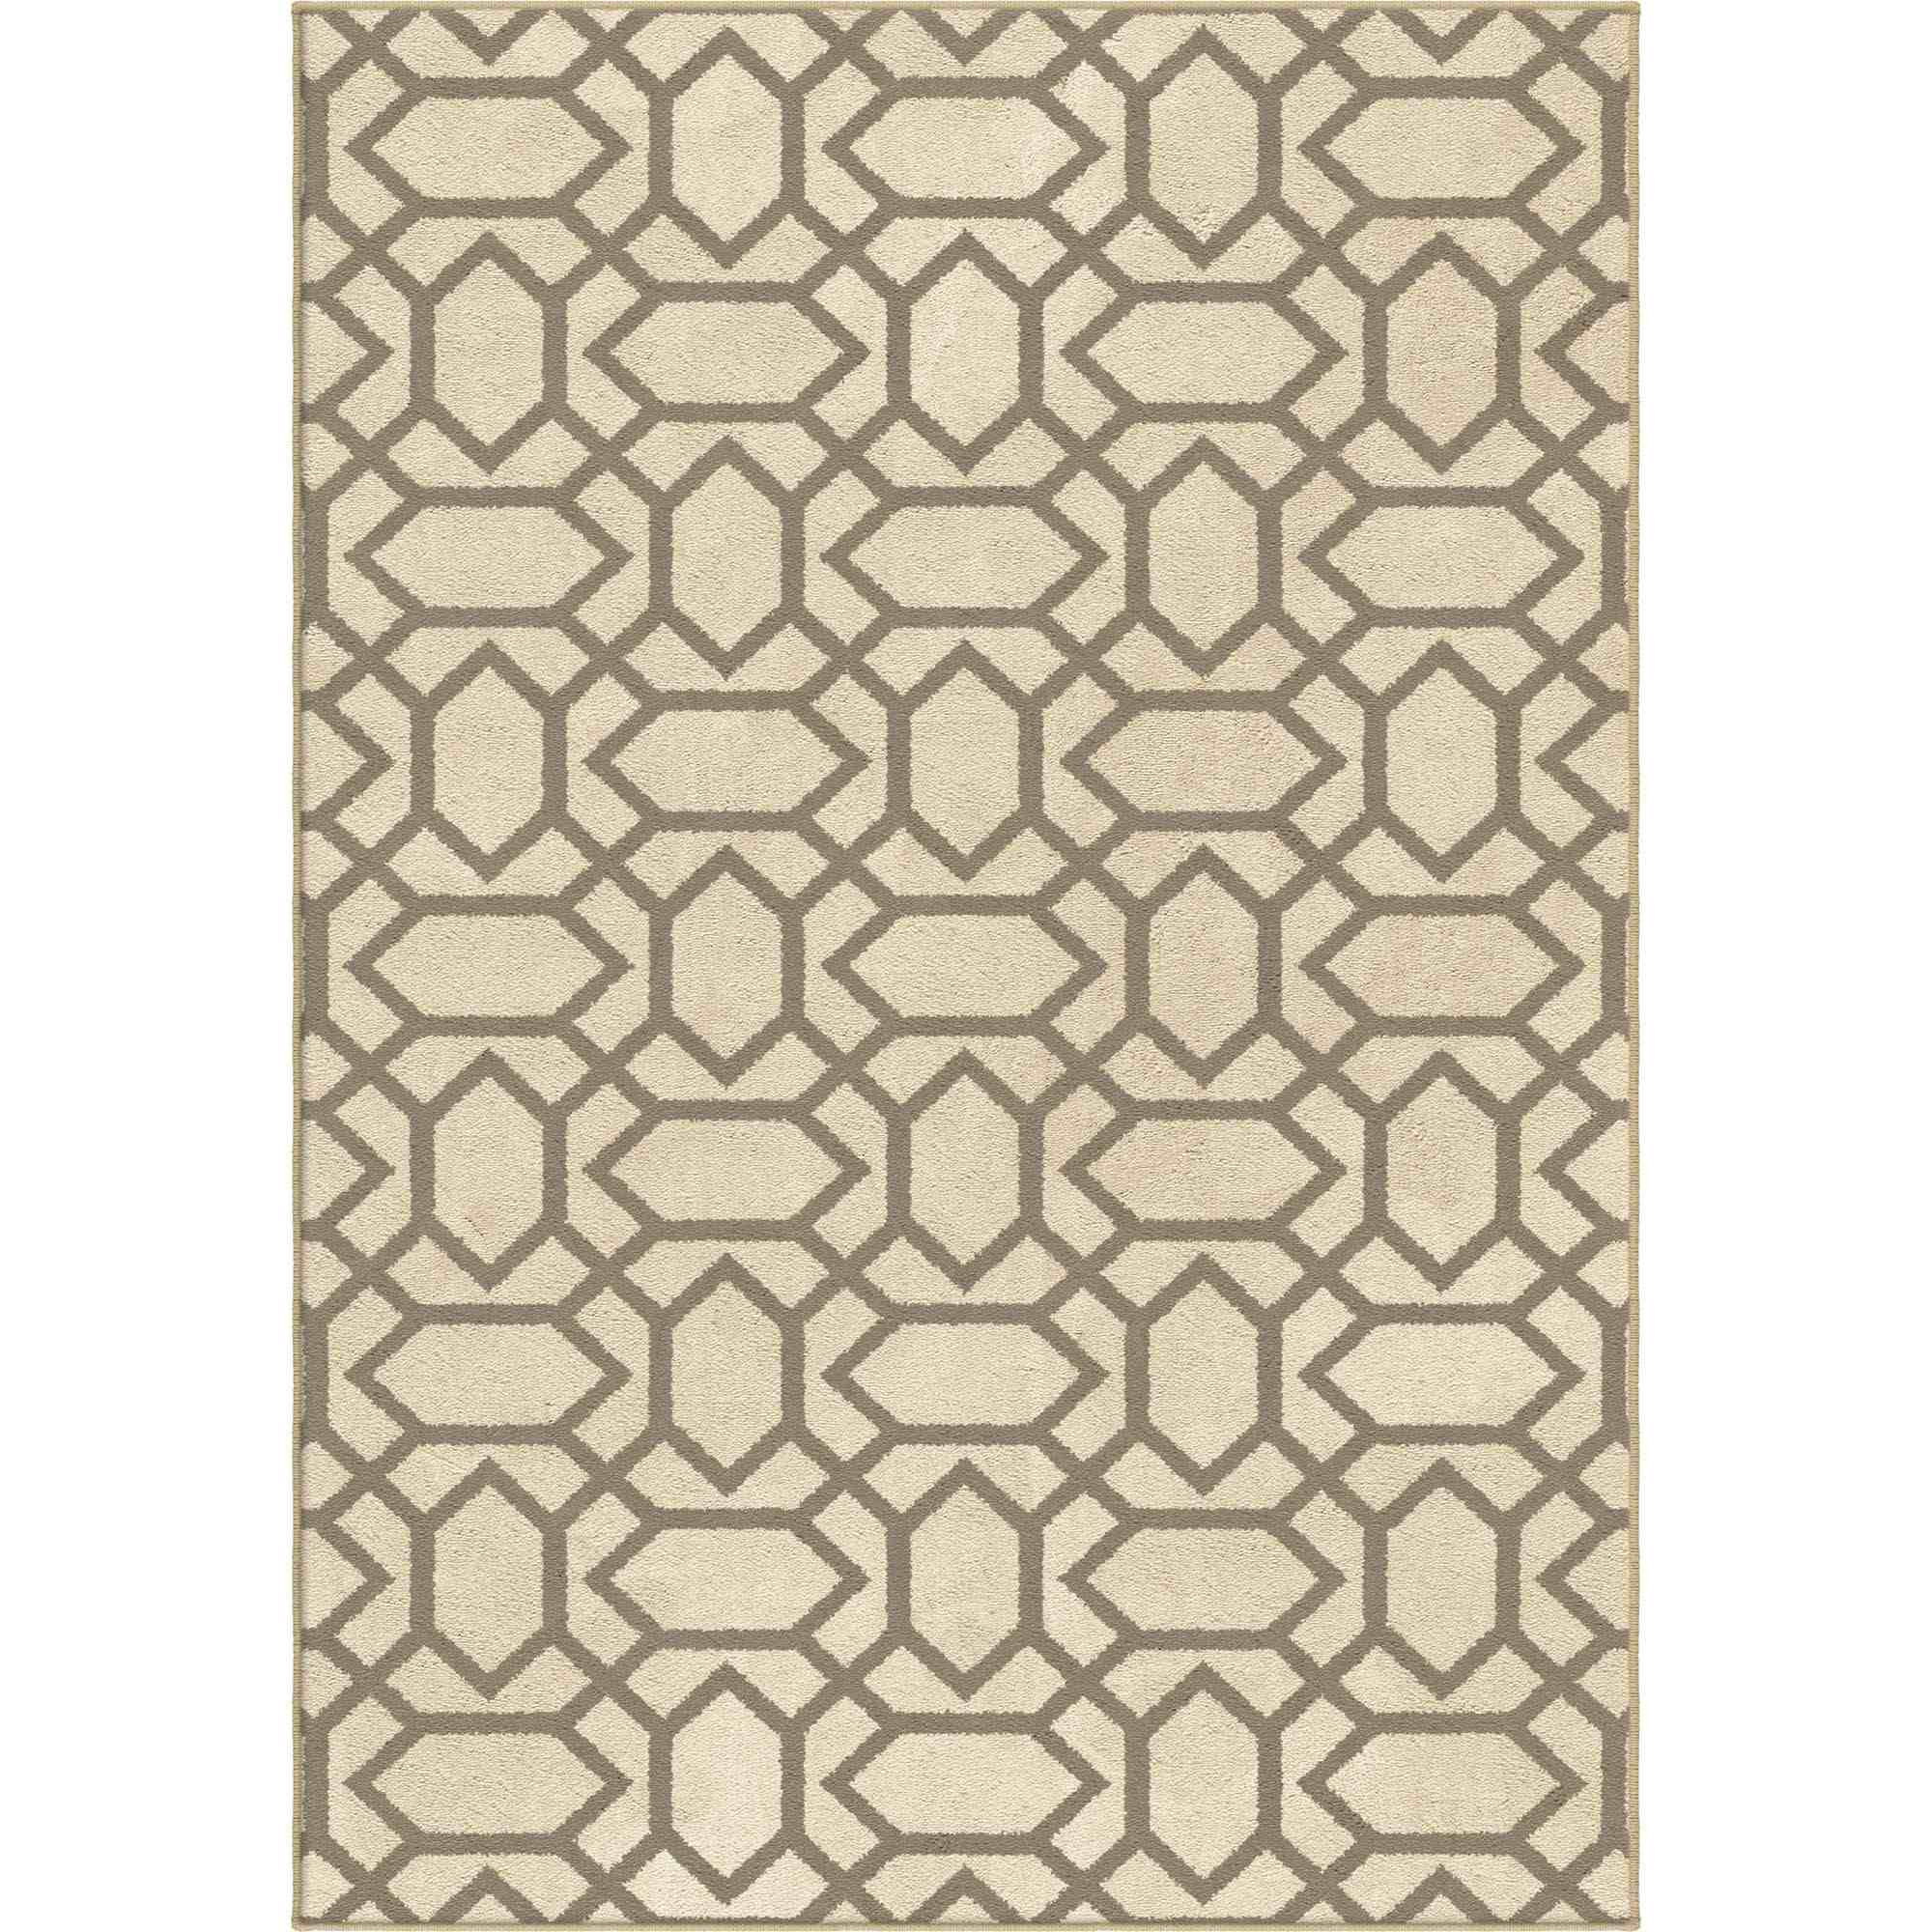 htm shoppypal rugs ivory st melrose area rug collection plush utopia orian falling leaves